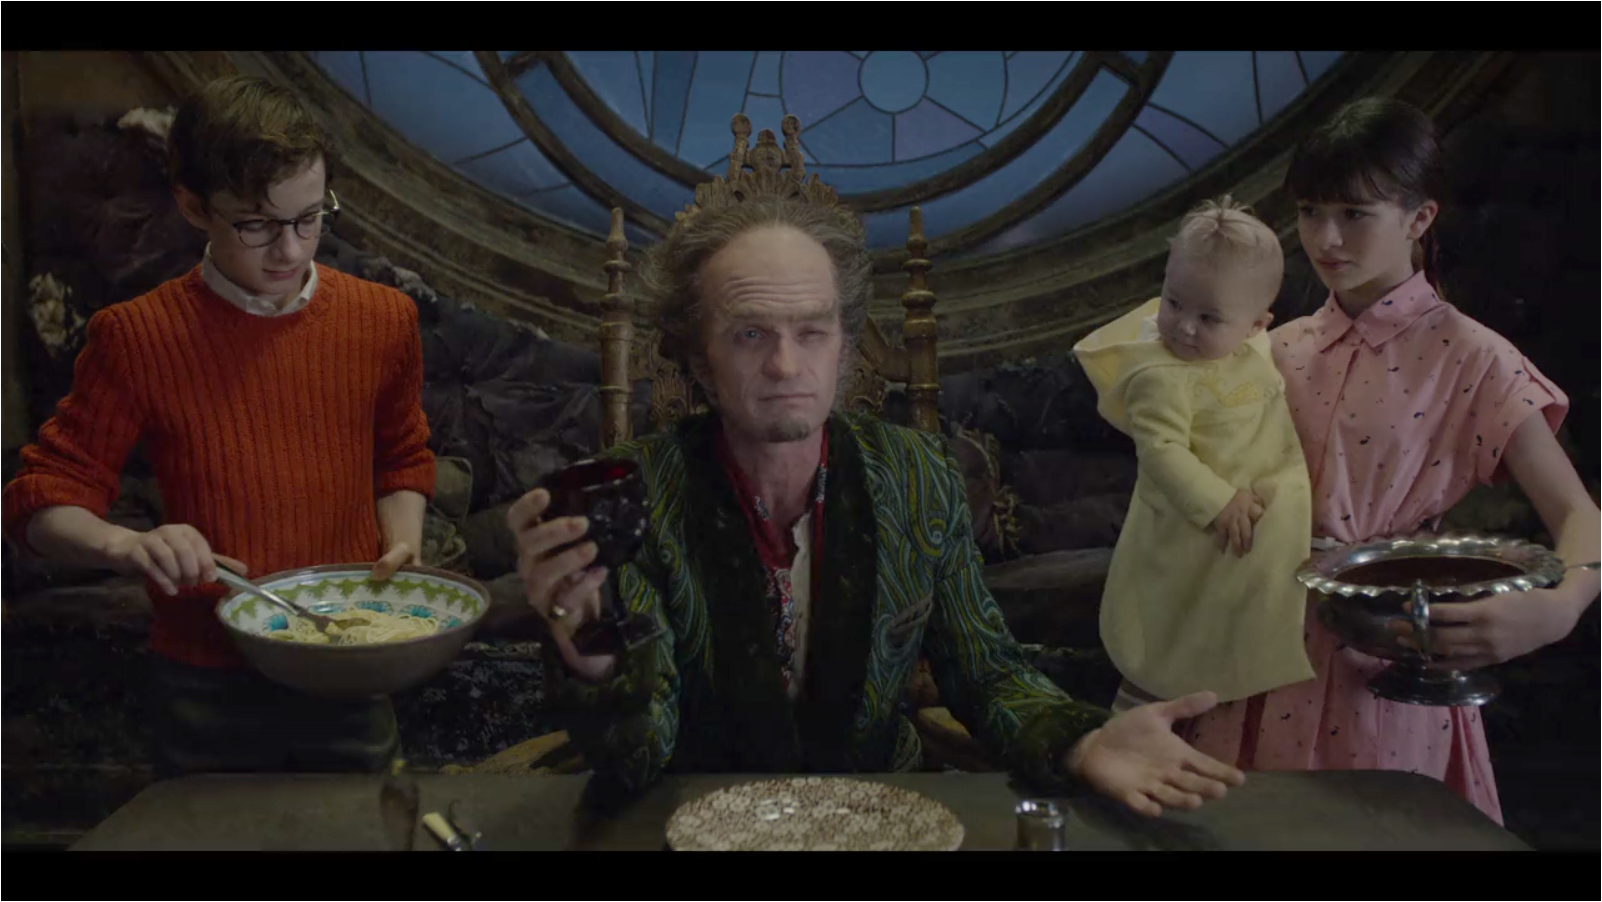 This still image was obtained by questionable means from the  Netflix  corporation. It contains clear evidence of the delicious meal of Pasta Puttanesca prepared by the Baudelaires, as well as the terrible table manners of Count Olaf, seen here preferring roast beef.